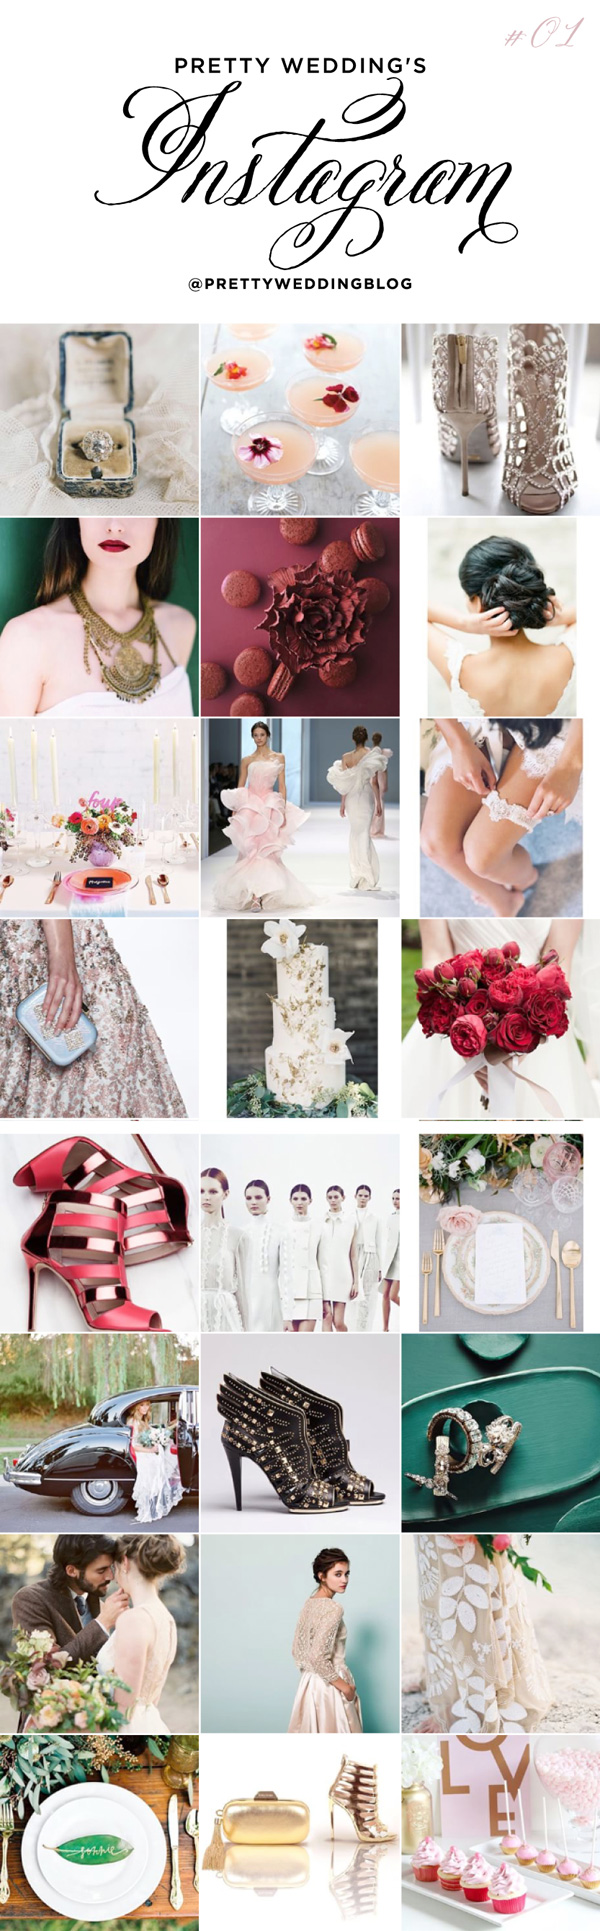 Blog Ślubny Pretty Wedding na Instagramie